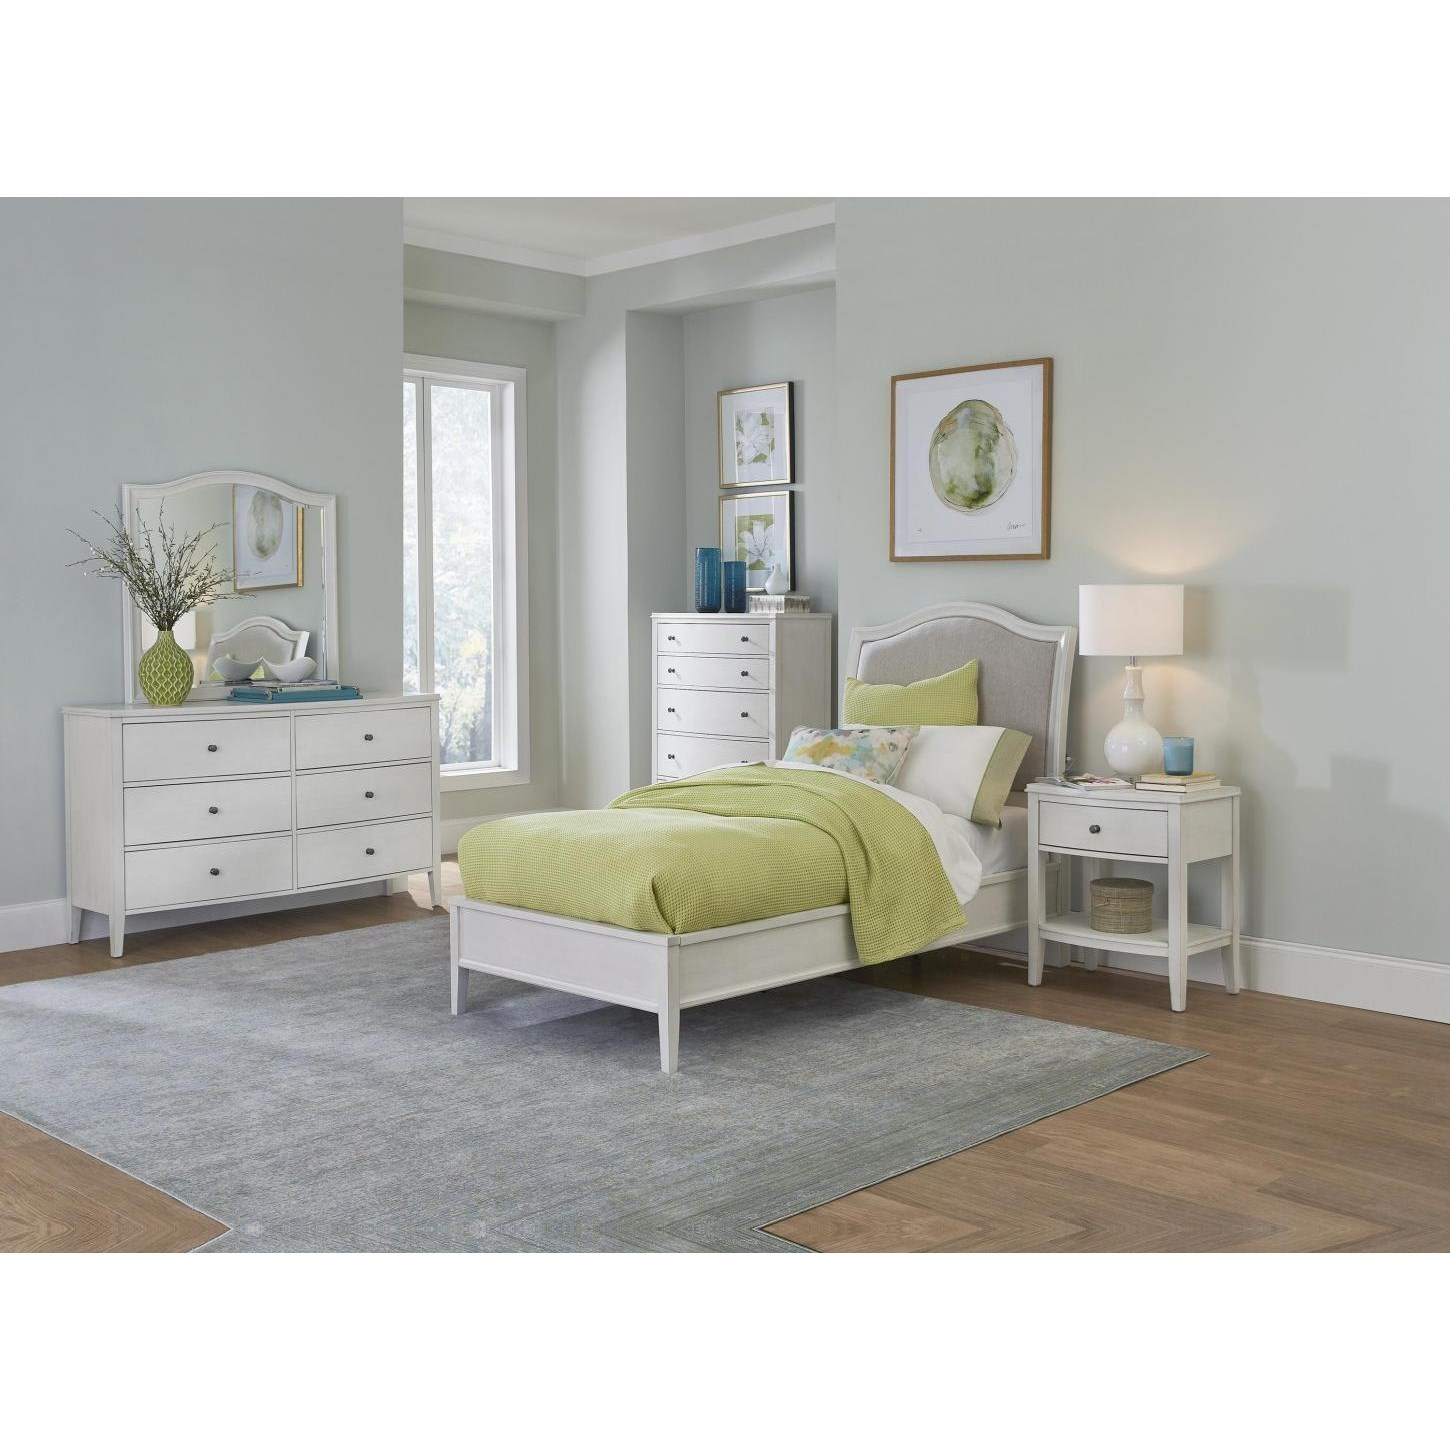 Charlotte  Twin Bedroom Group  by Aspenhome at Baer's Furniture